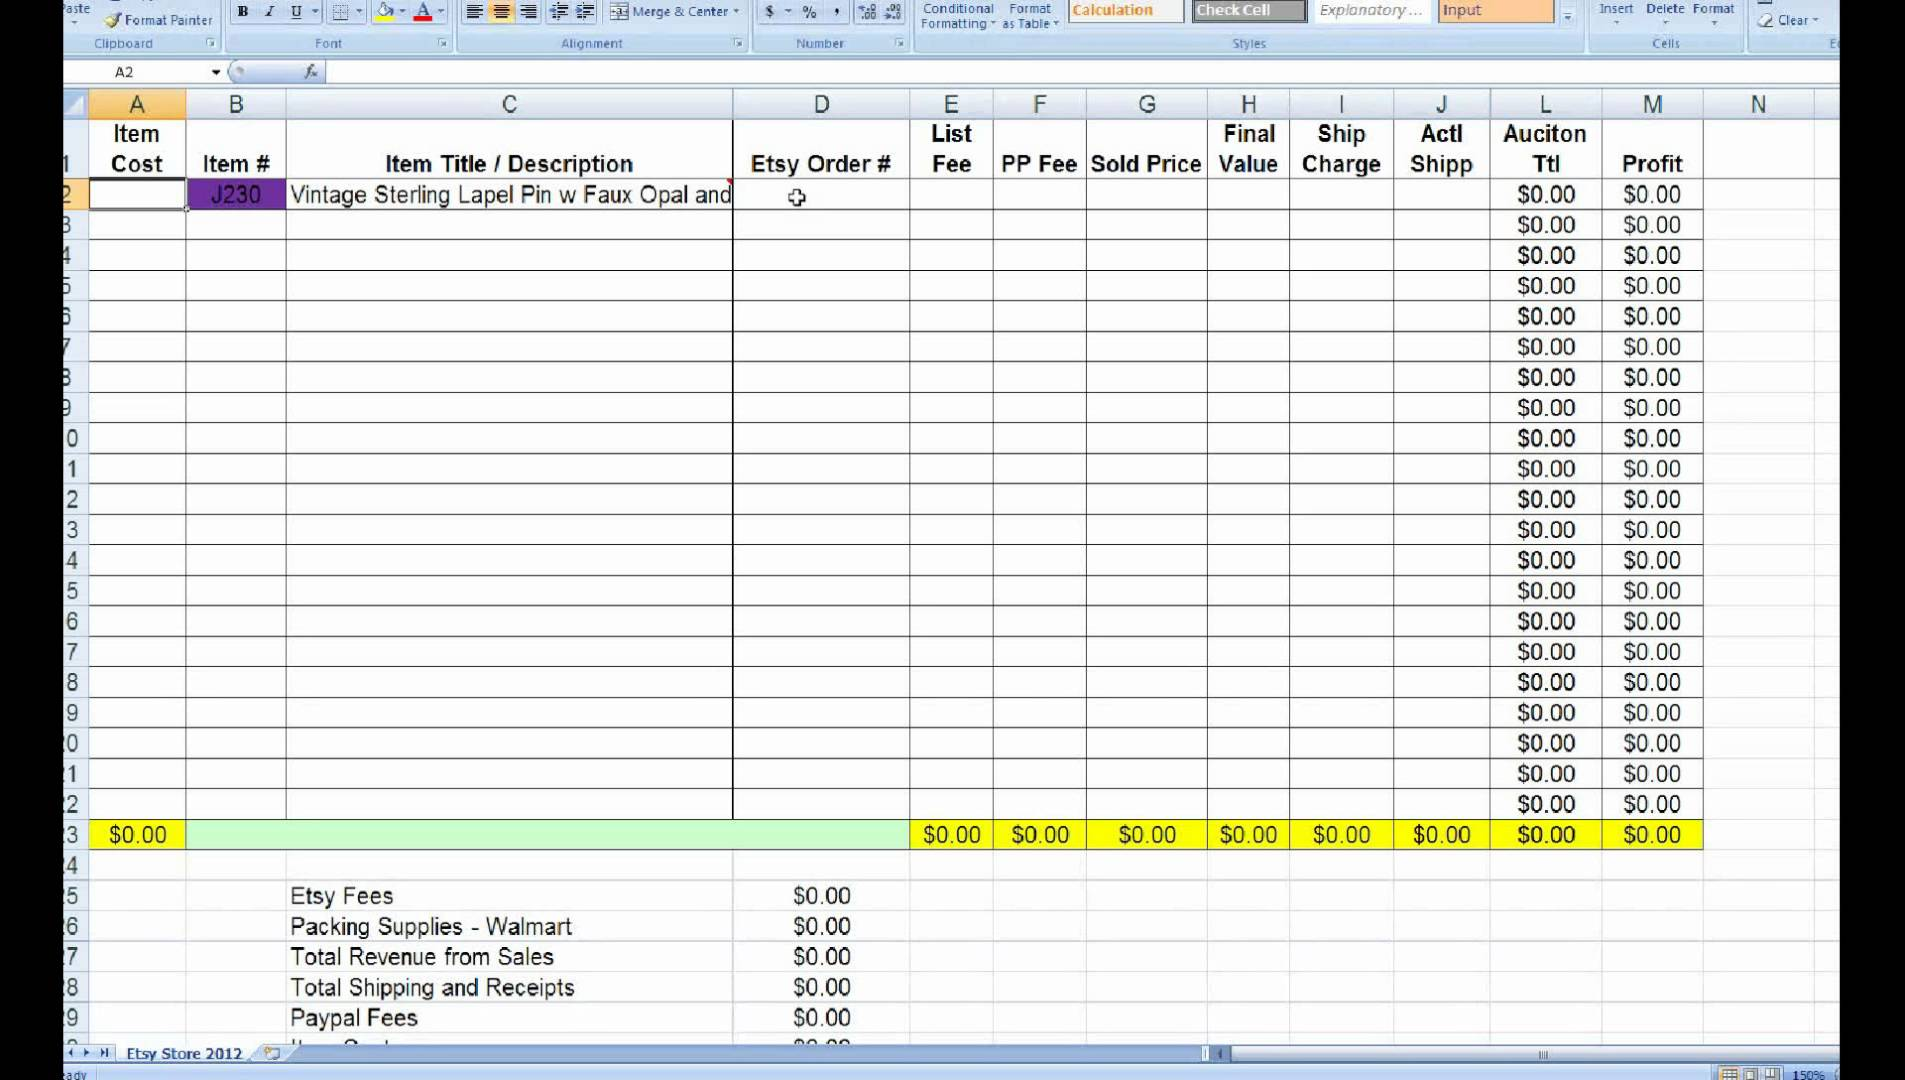 Issue Tracking Spreadsheet Sofware